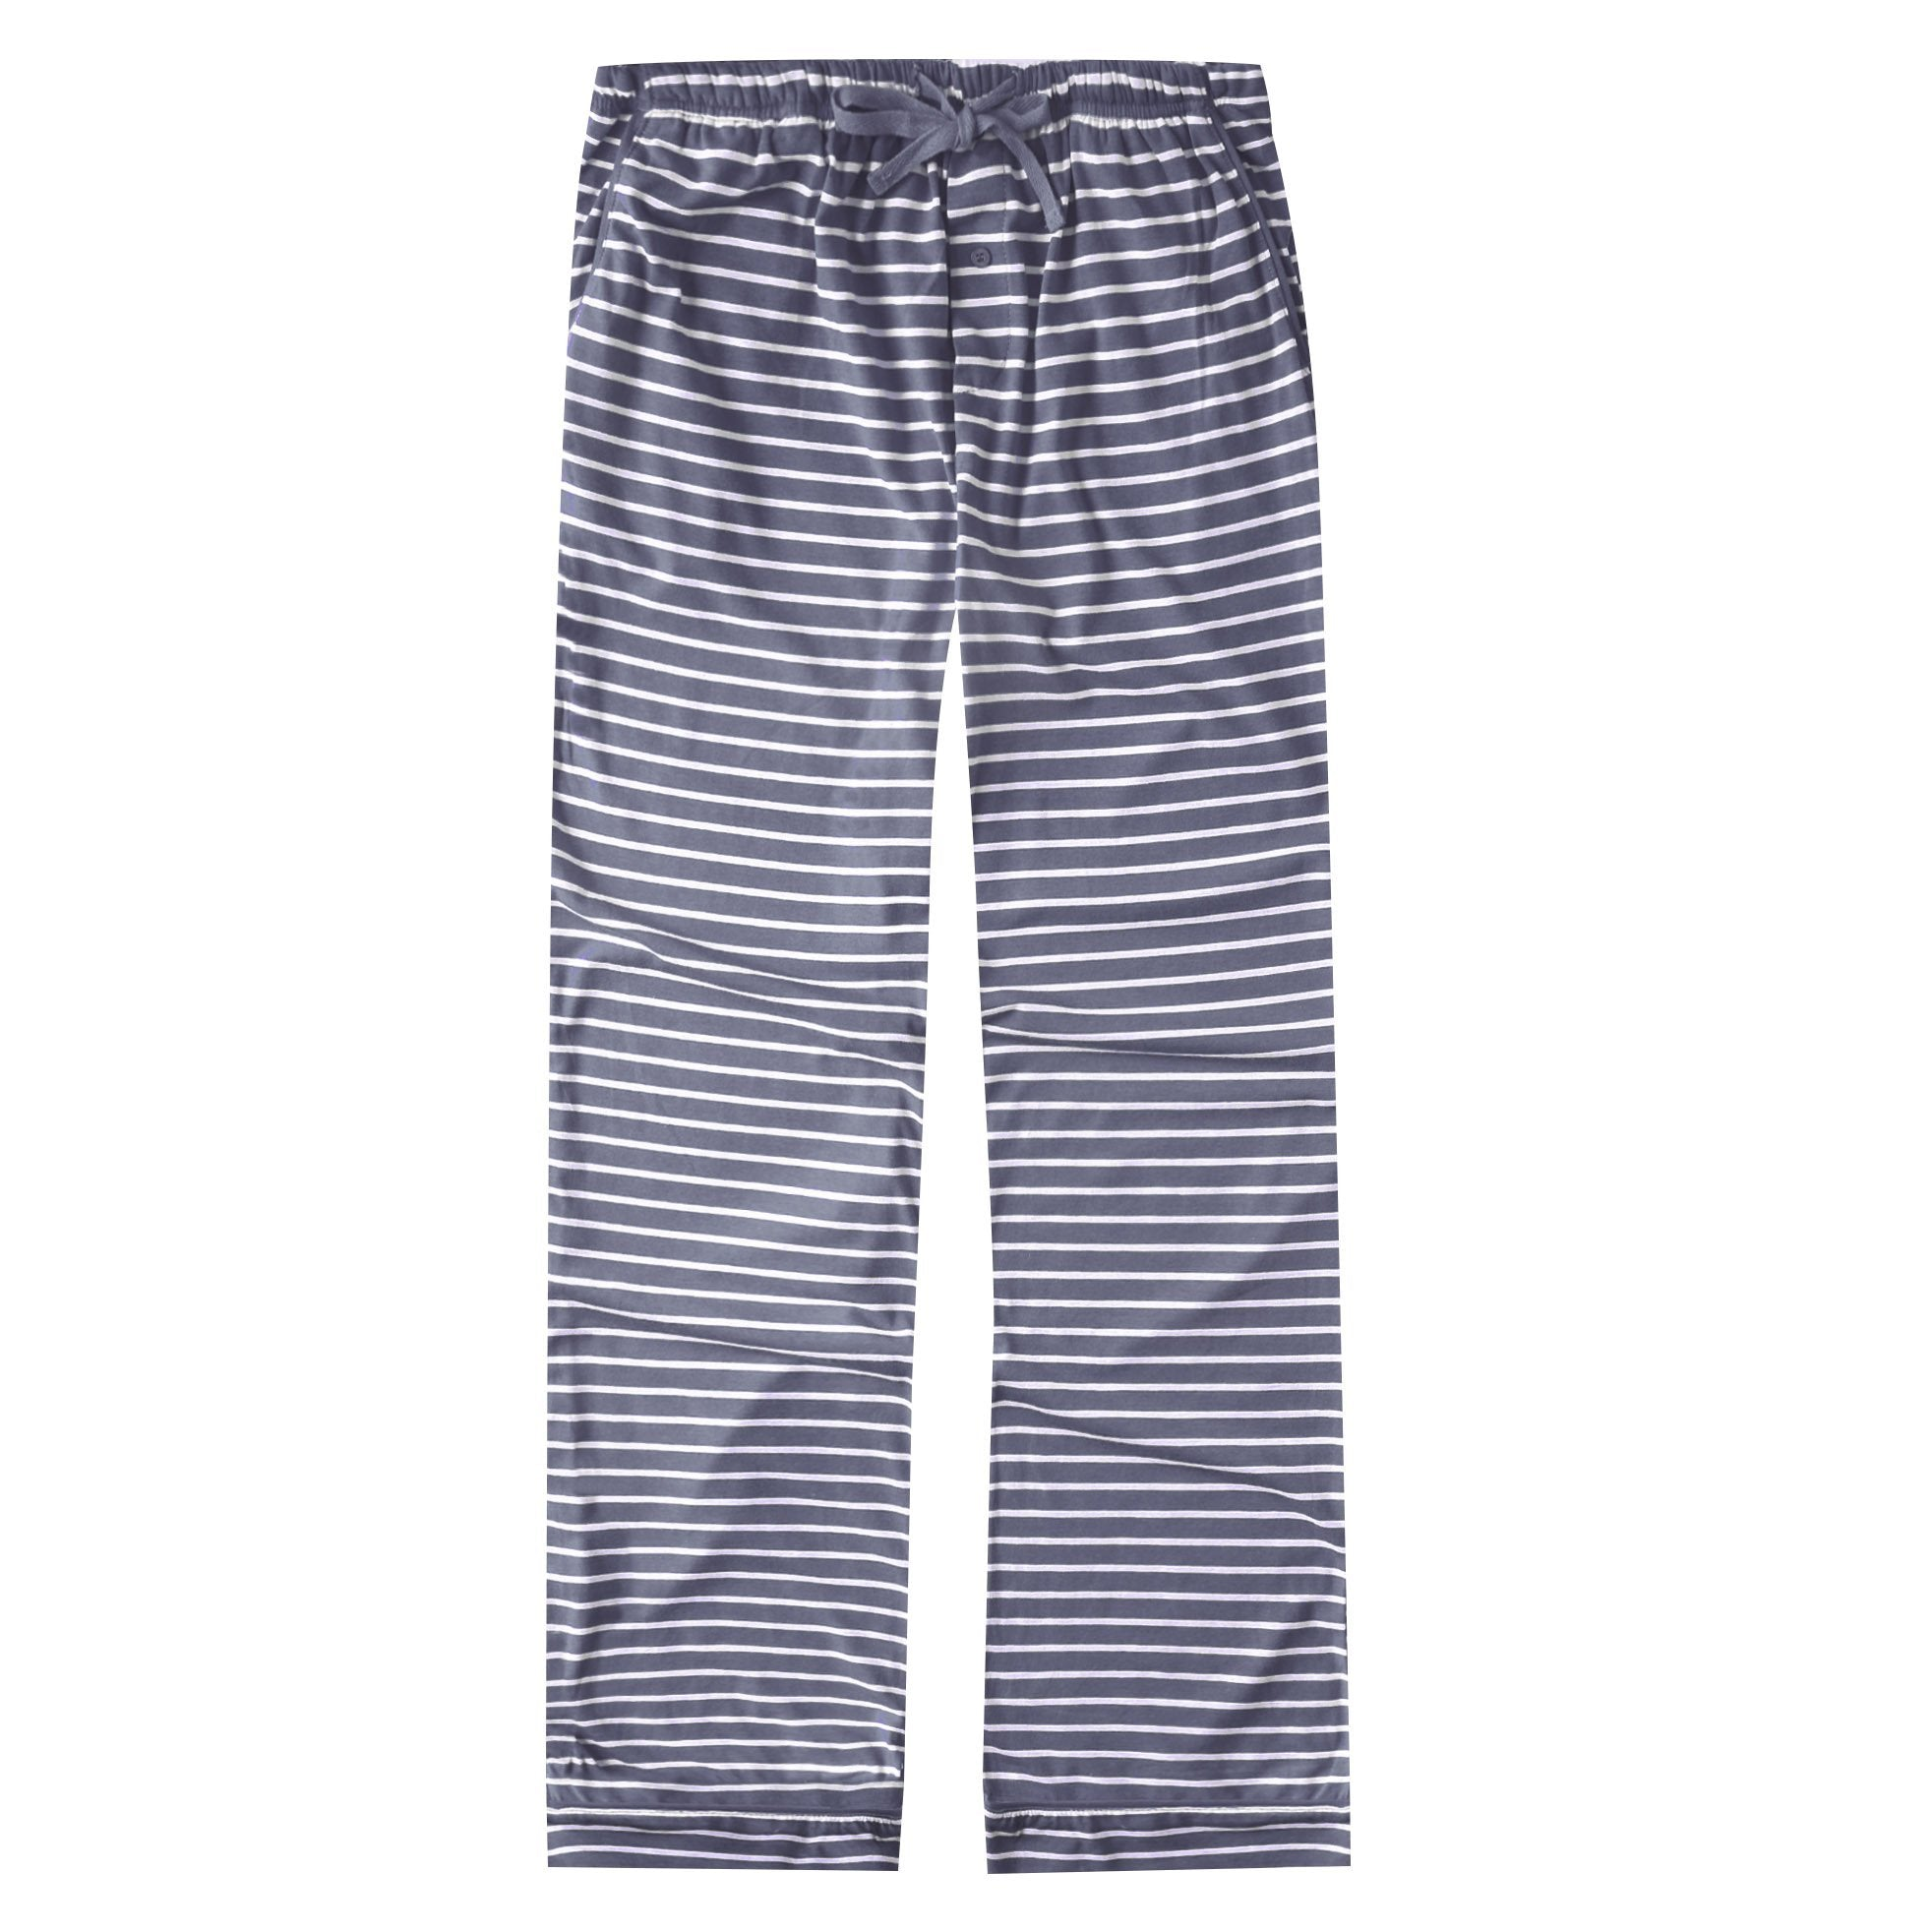 Women's Soft Knit Jersey Lounge Pants